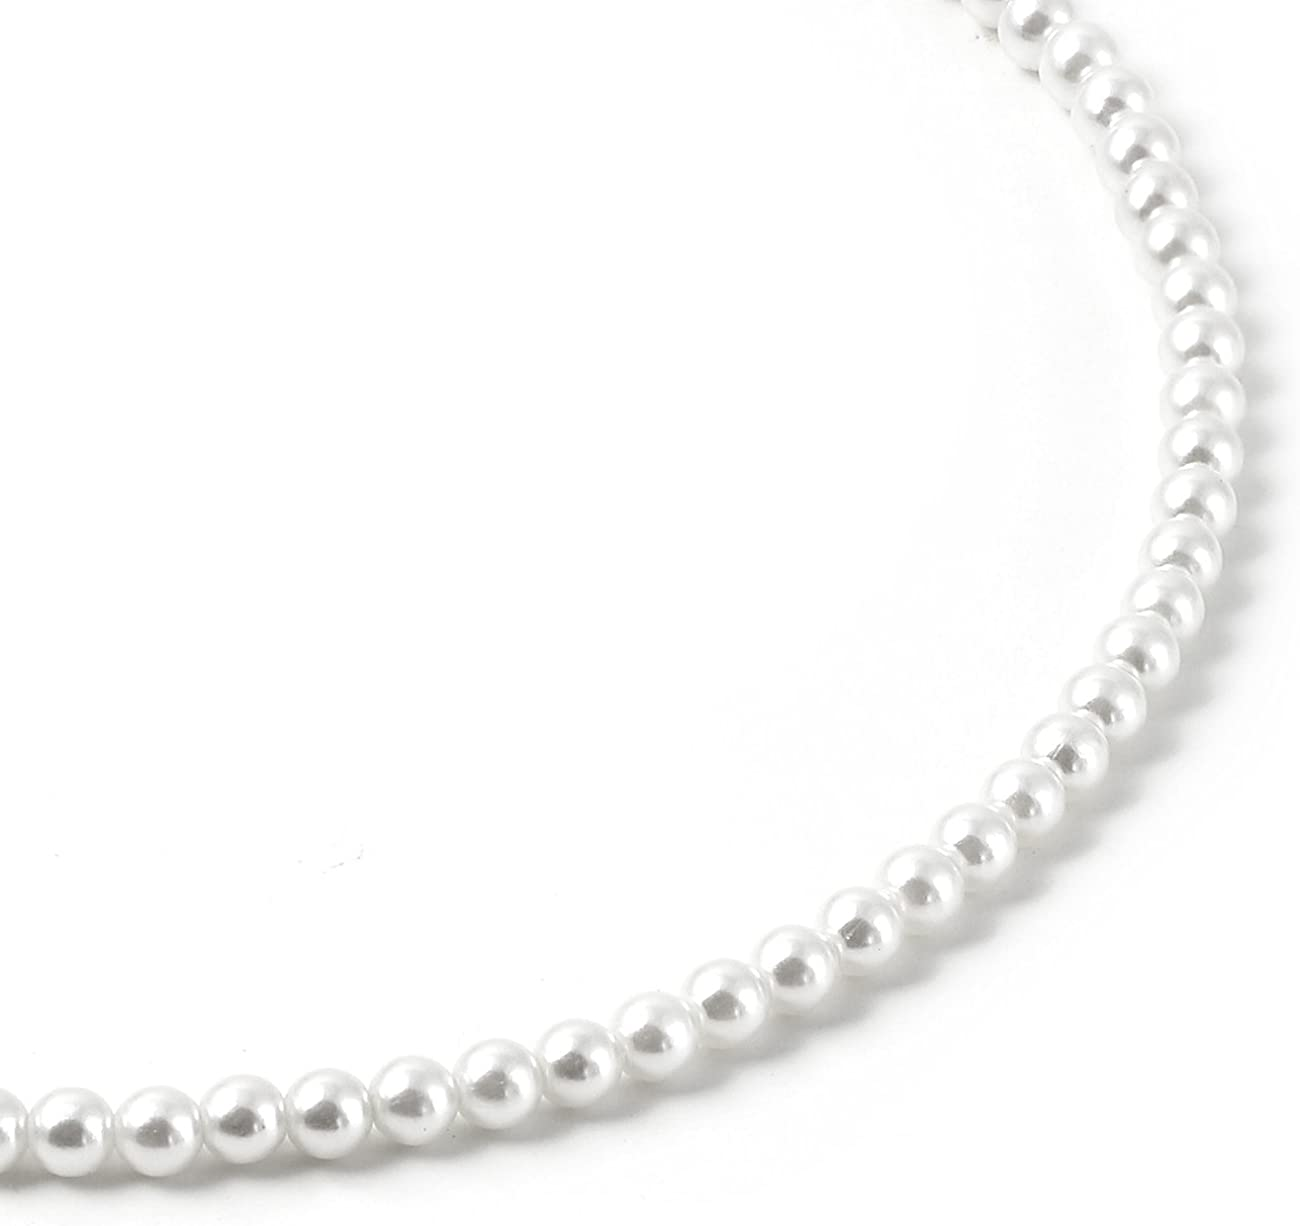 Topwholesalejewel White Pearl Single Row Strand Necklace